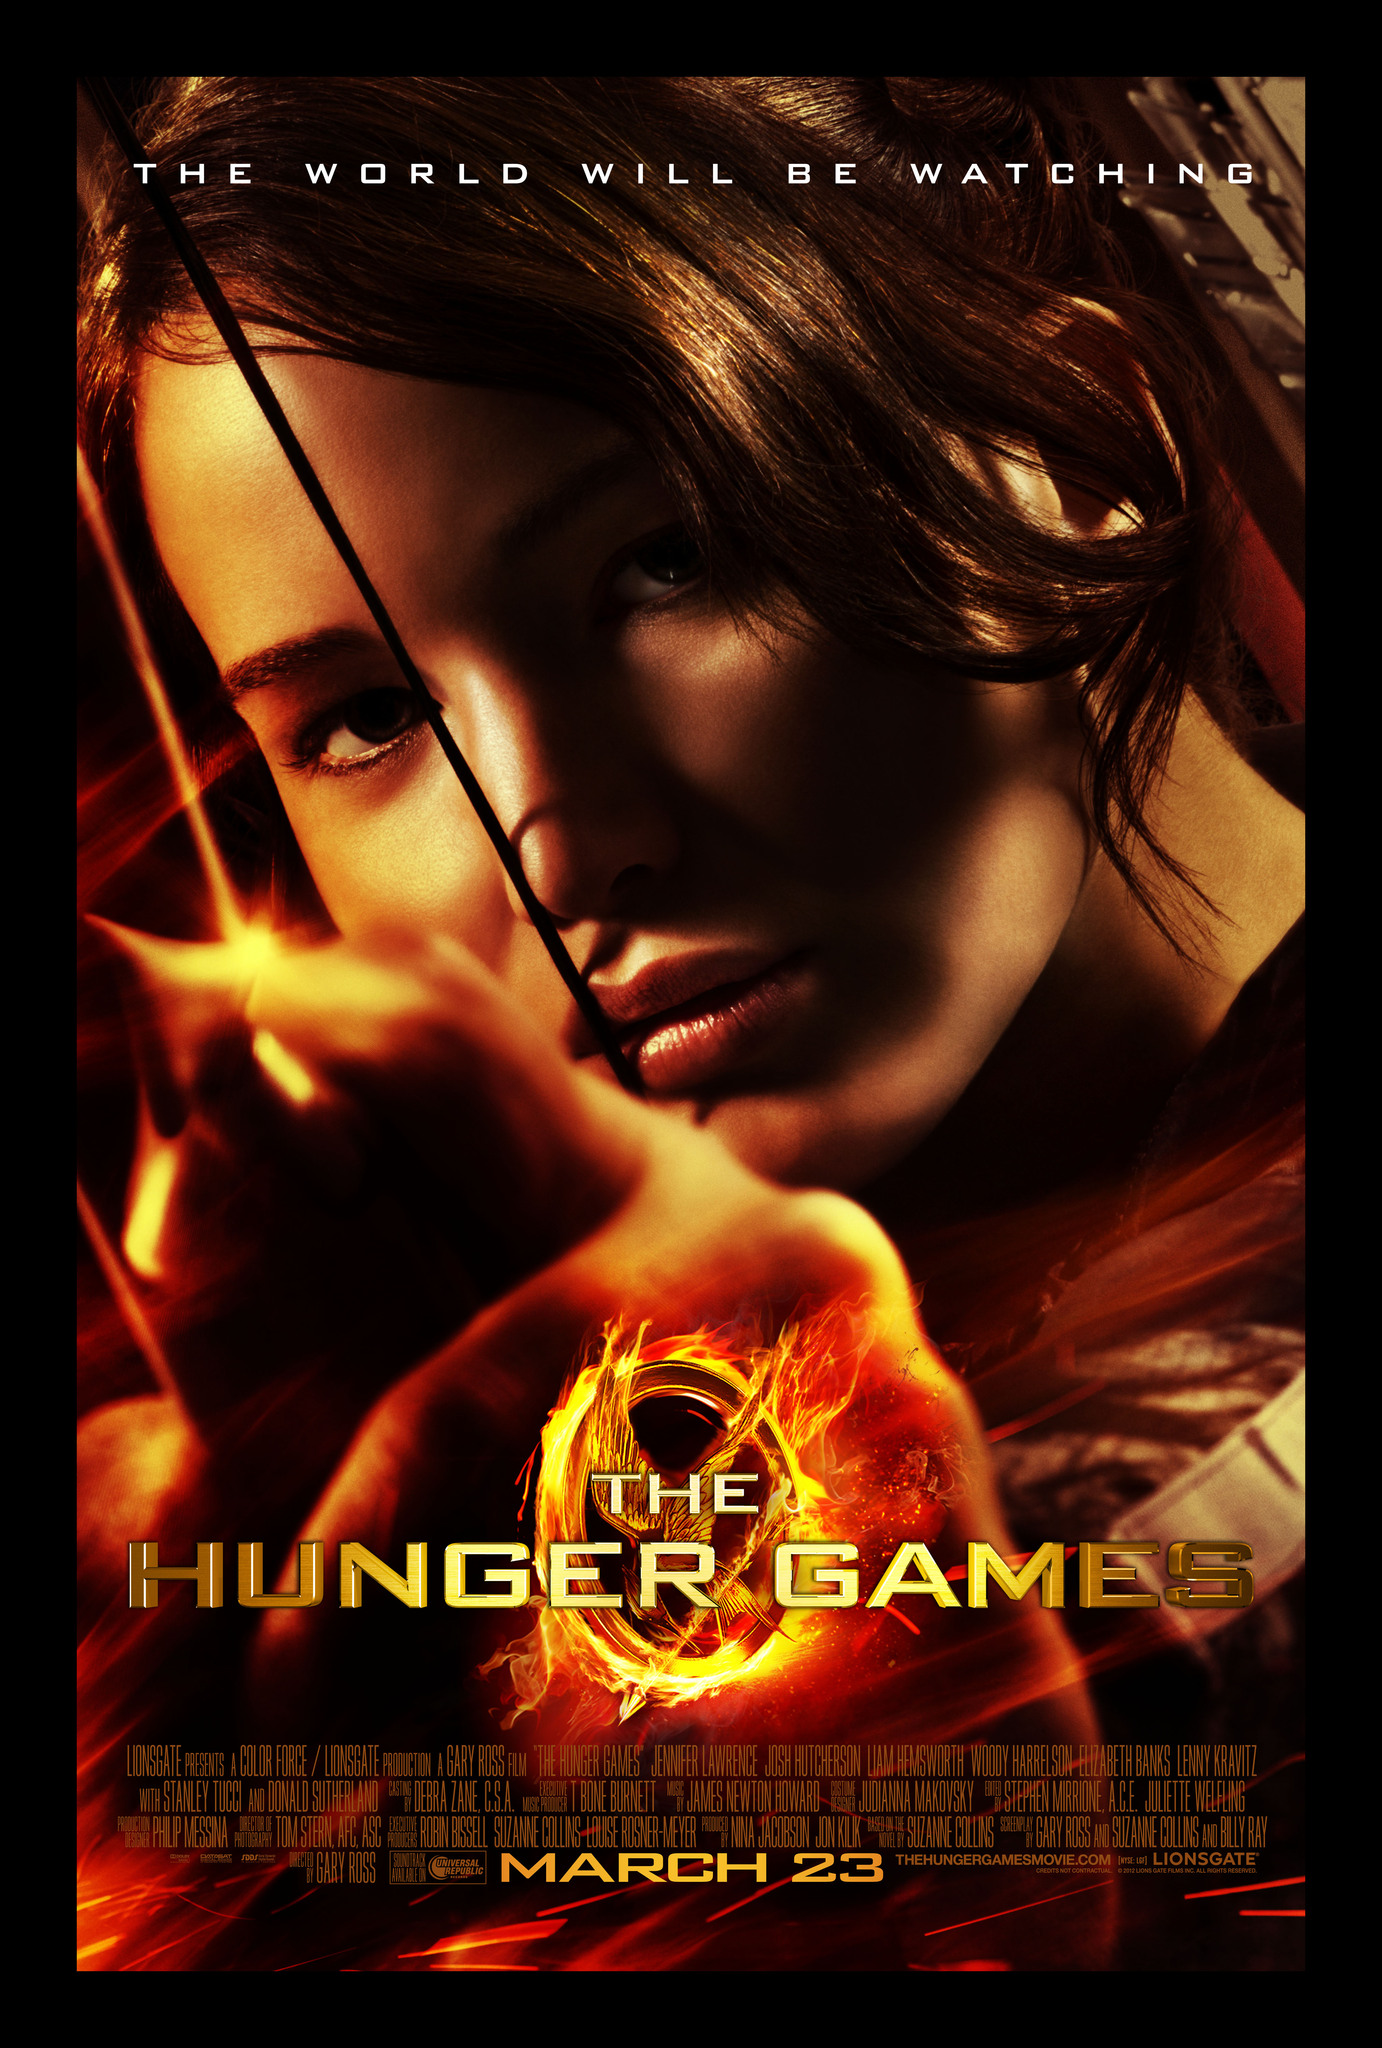 Hunger games 2 film times legit mobile casinos